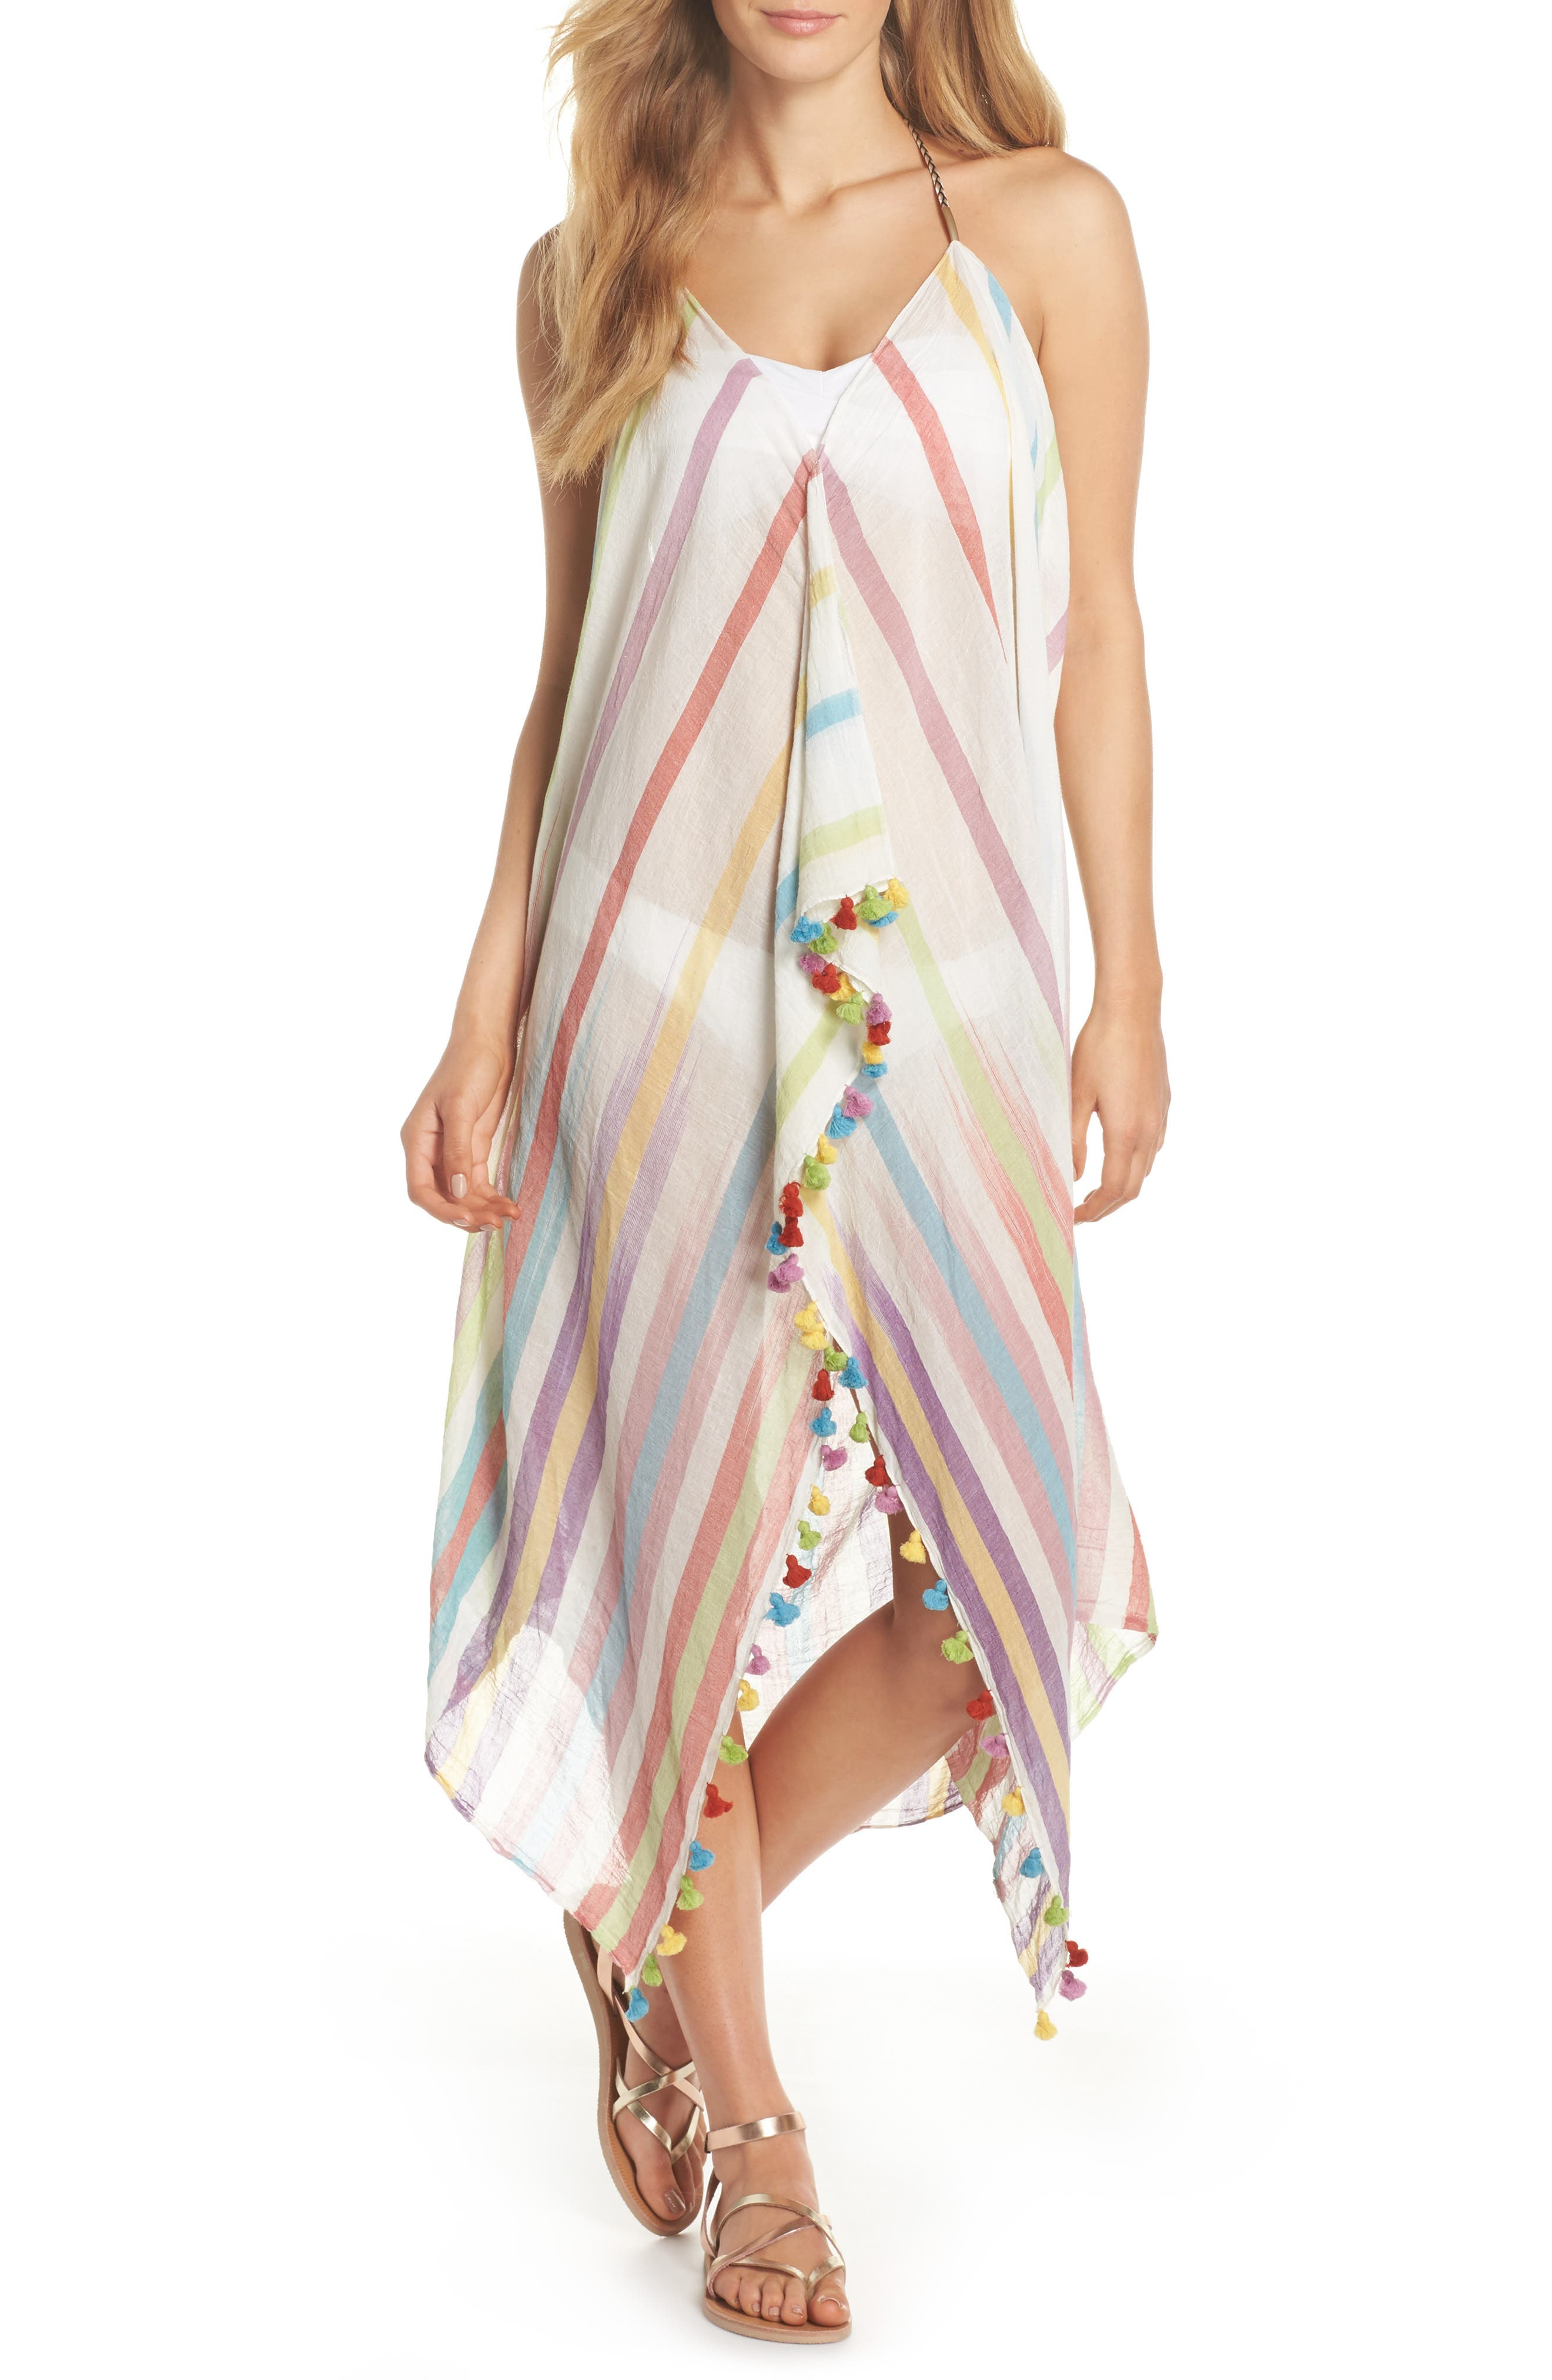 Pool Party Beach to Street Cover-Up Dress,                             Main thumbnail 1, color,                             Rnb